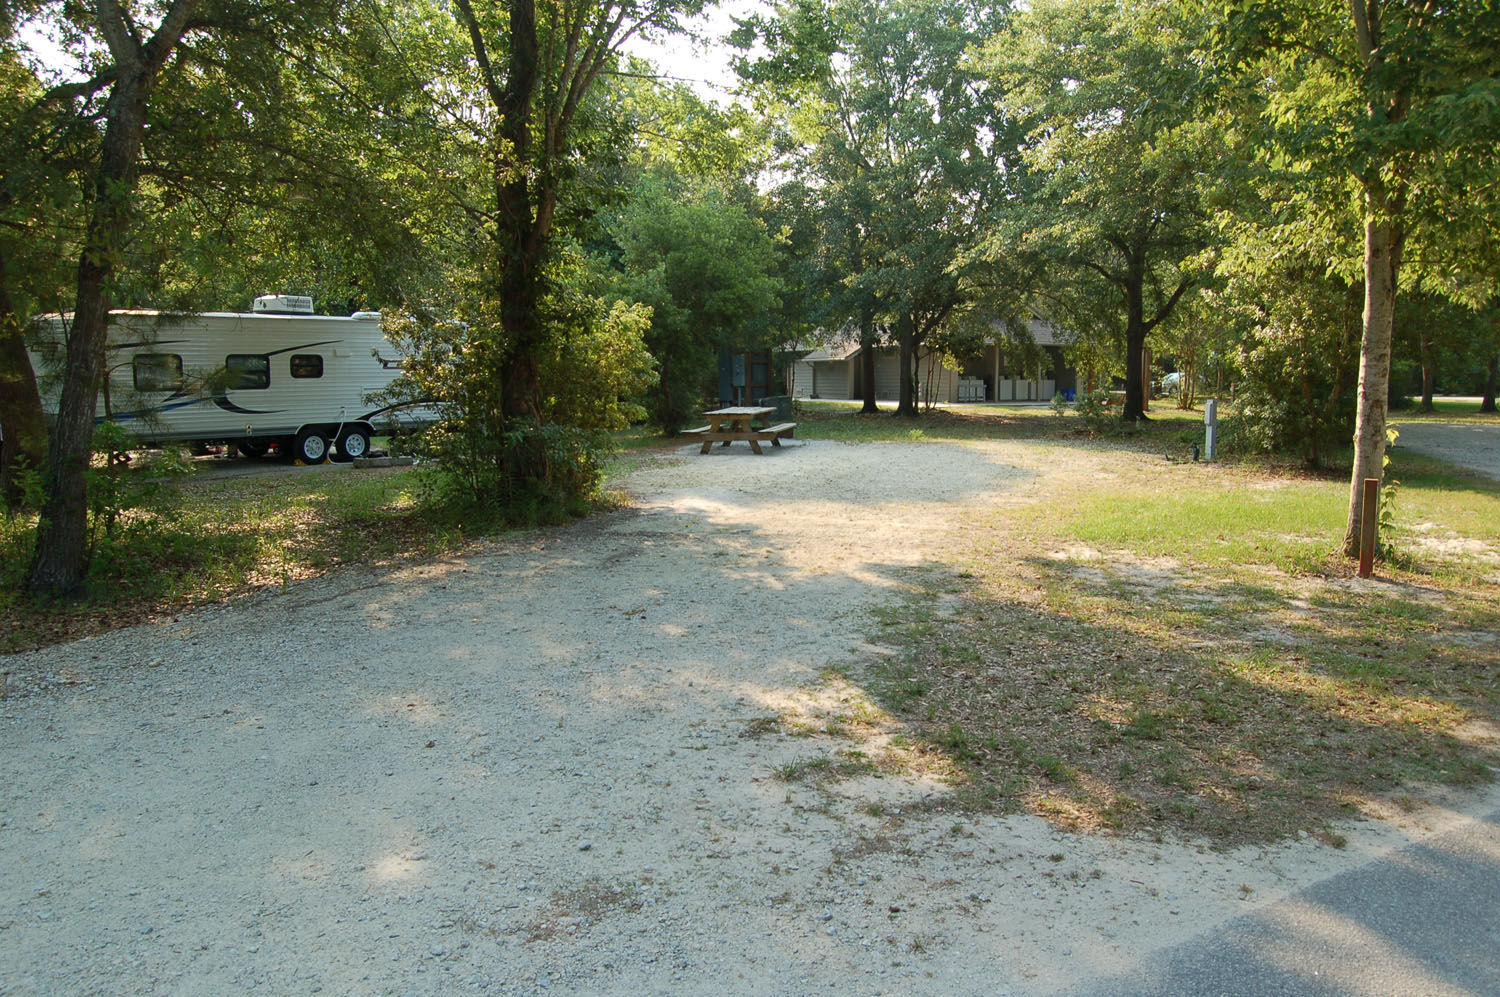 Image of campsite #74 at the Campground at James Island County Park